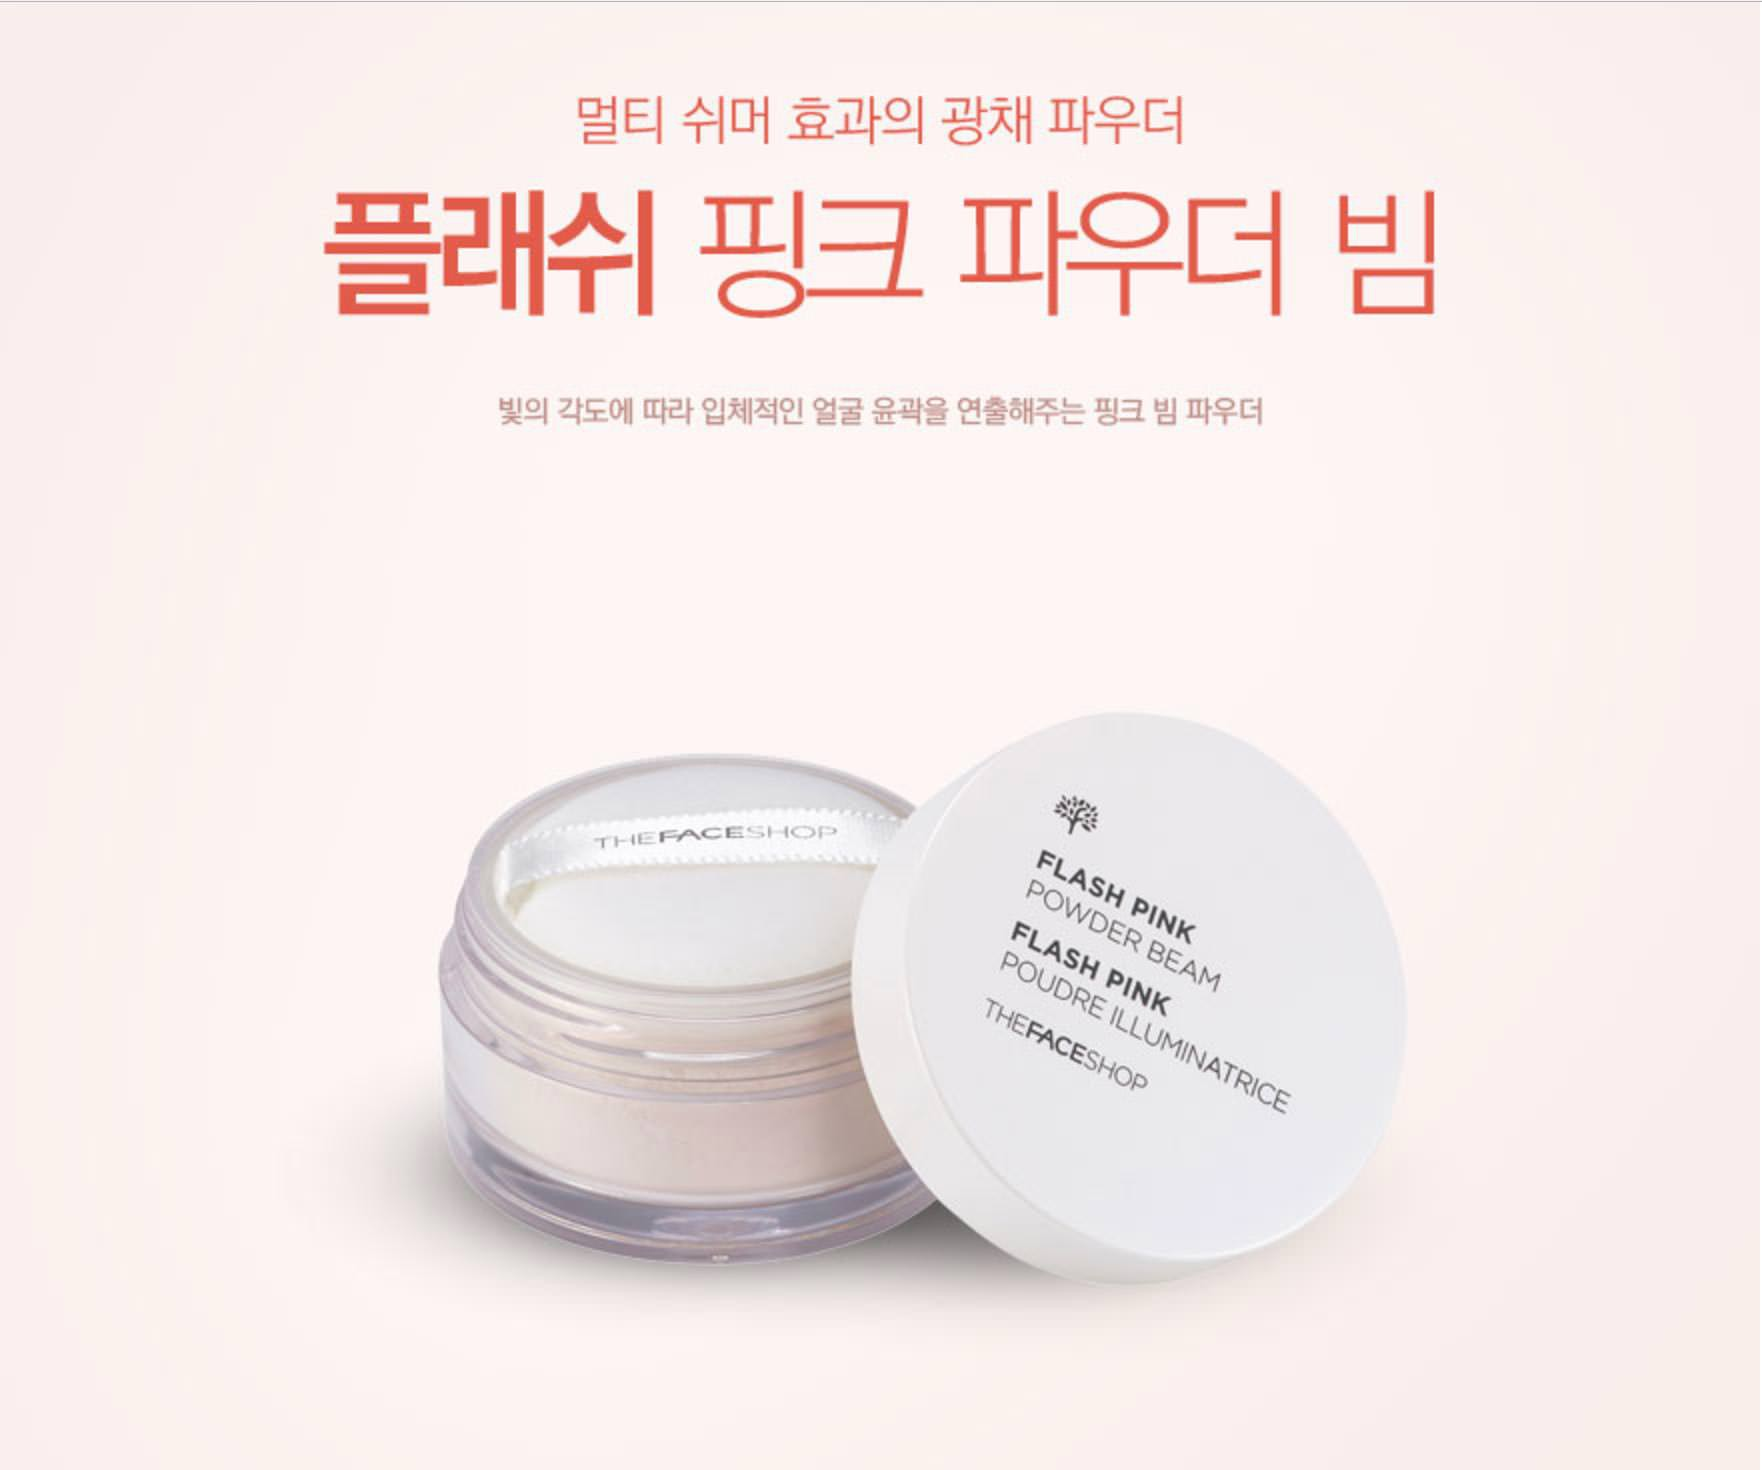 Phấn Phủ Bột Bắt Sáng The Face Shop Flash Pink Powder Beam 7g